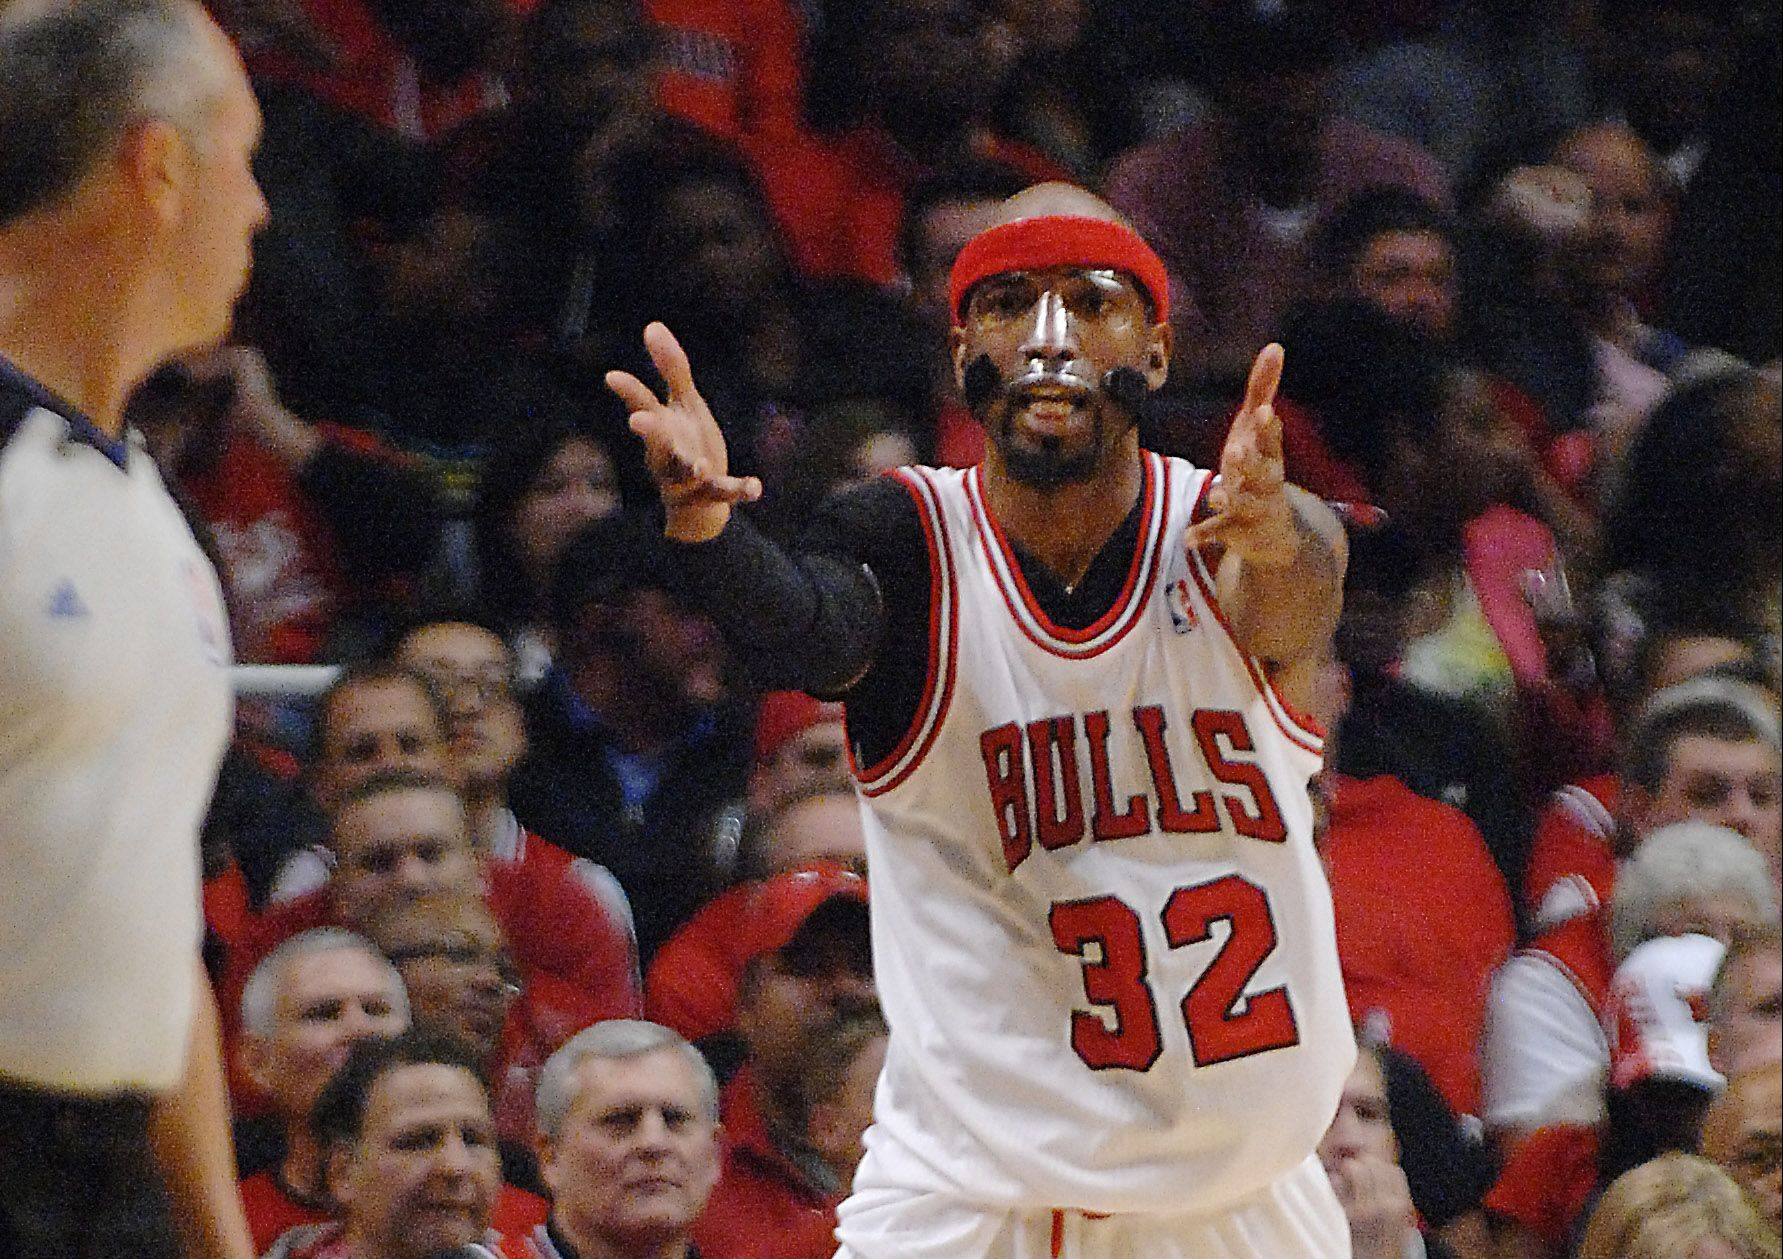 The Bulls' Richard Hamilton scored 19 points, including 11 in the first quarter Saturday in a 103-91 win over the Sixers at the United Center in Game 1 of the playoffs.